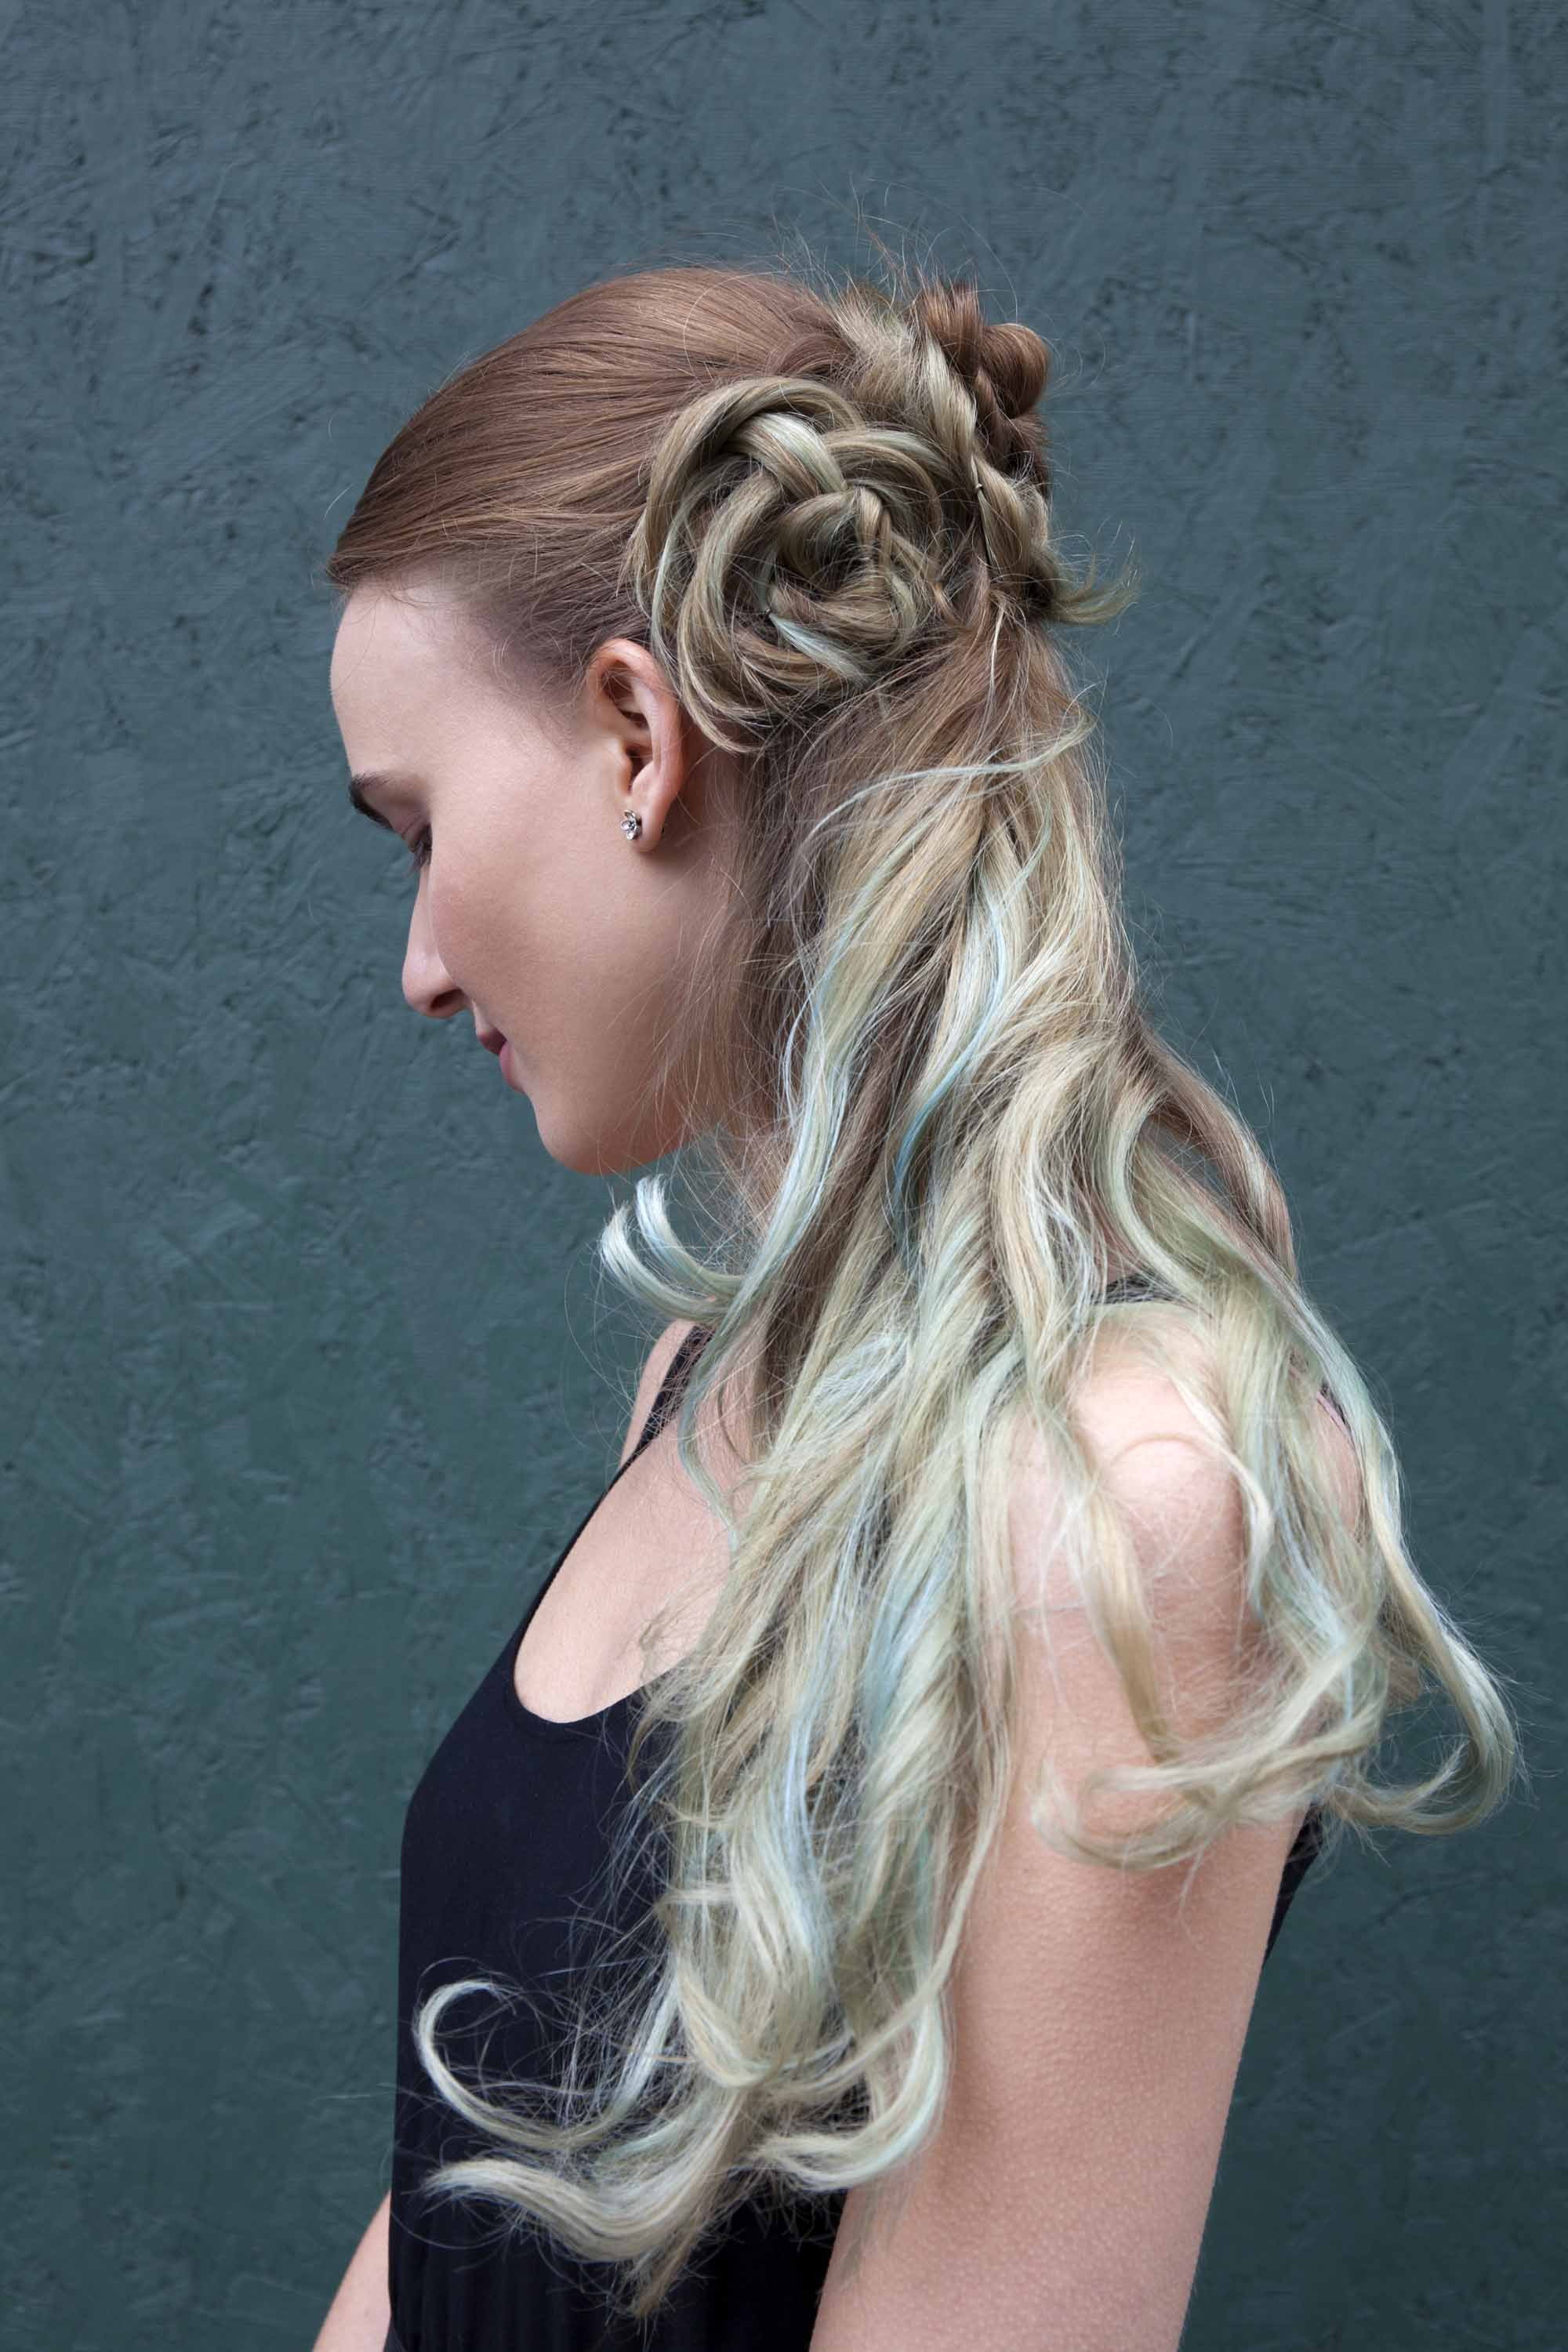 How to Spiff Up Your Regular Updo Braid